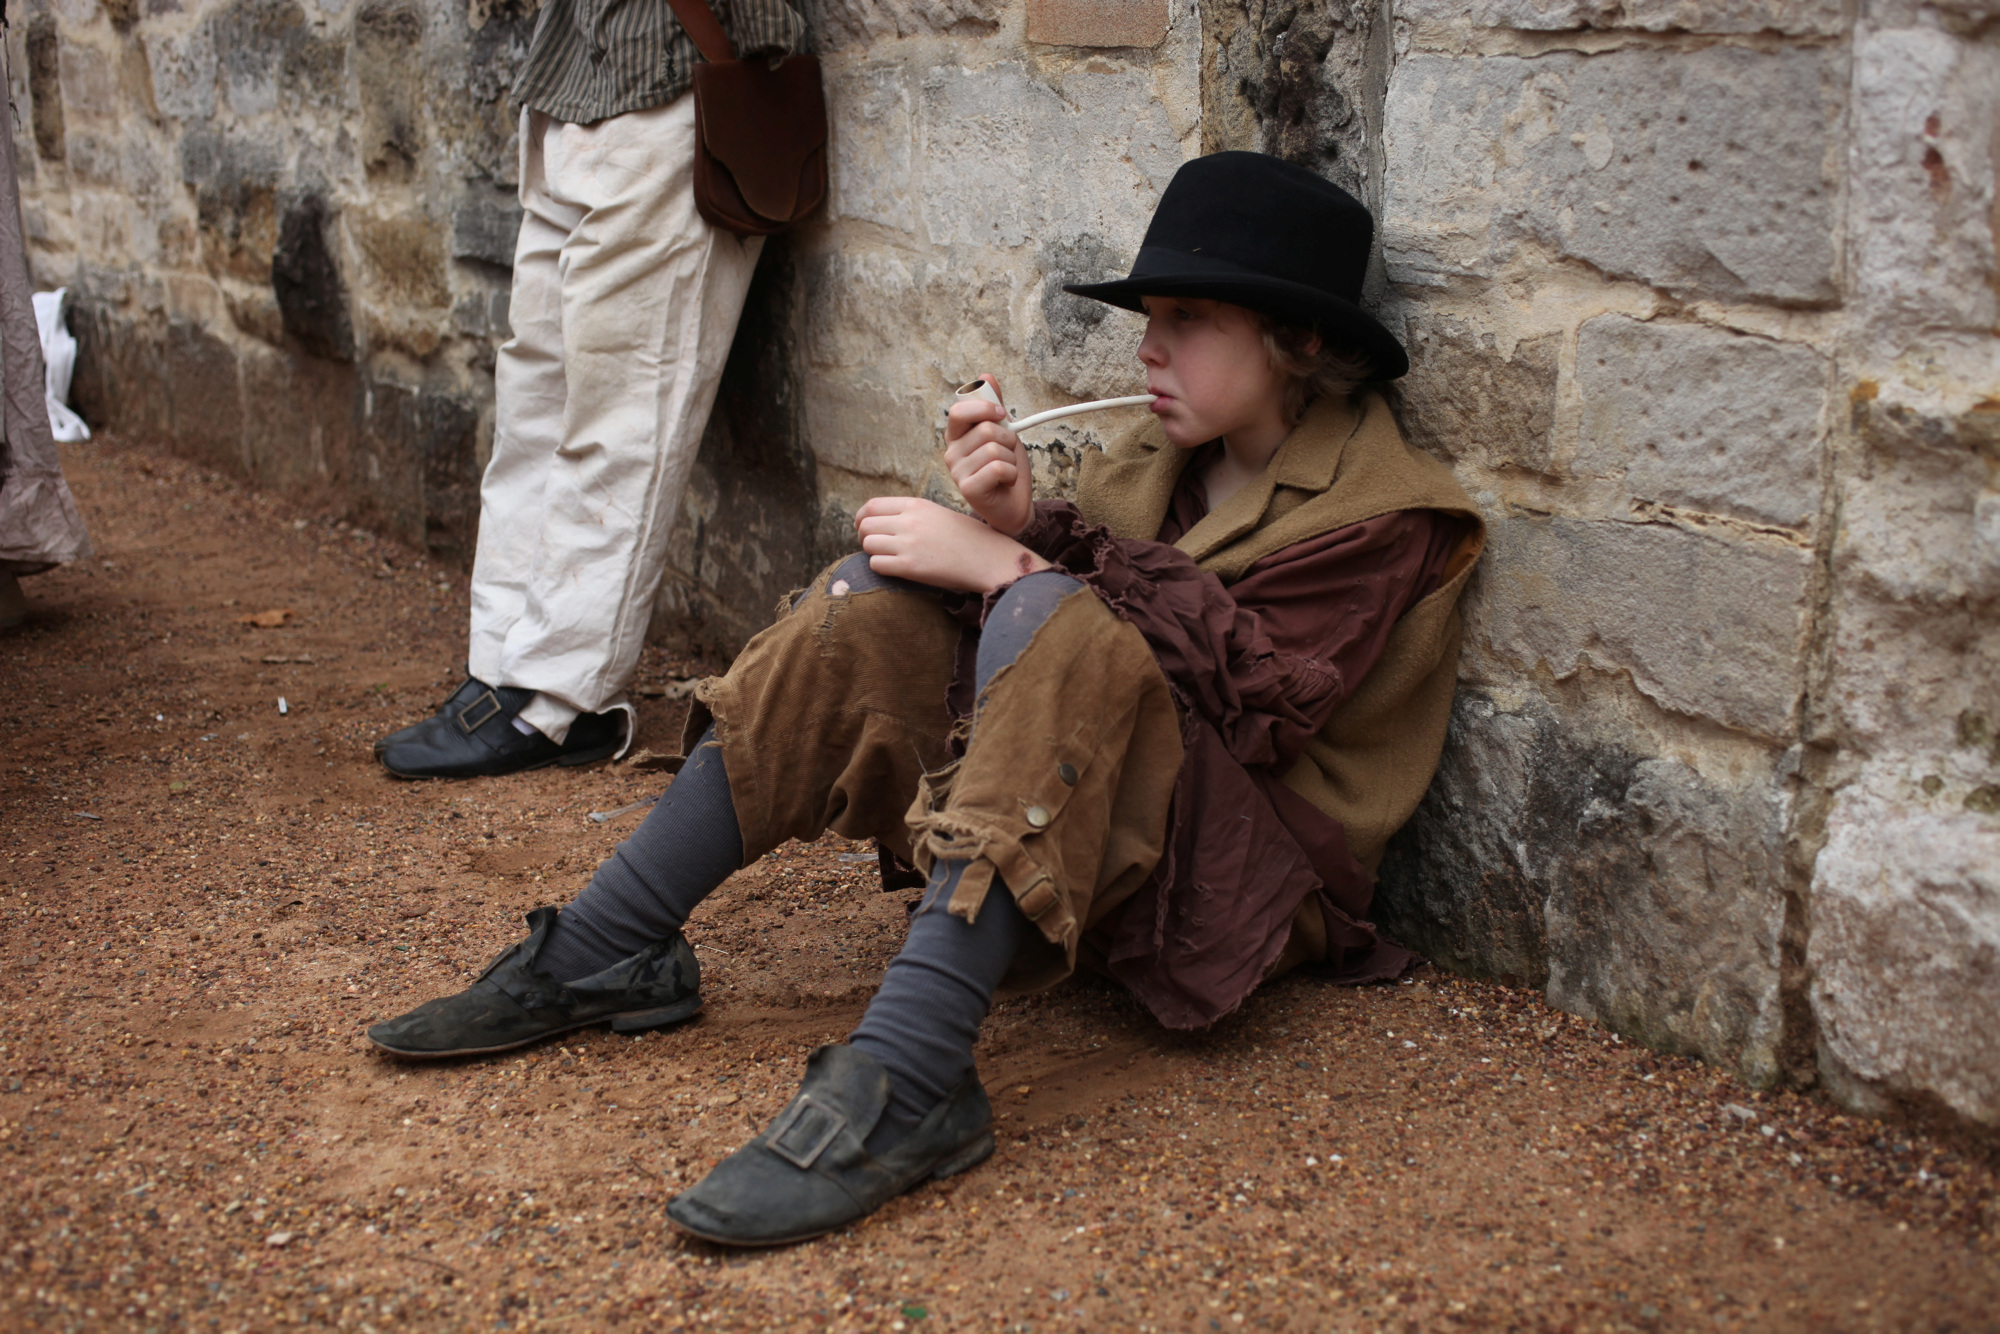 Child dressed as convict slumped against stone wall 'smoking' a pipe.